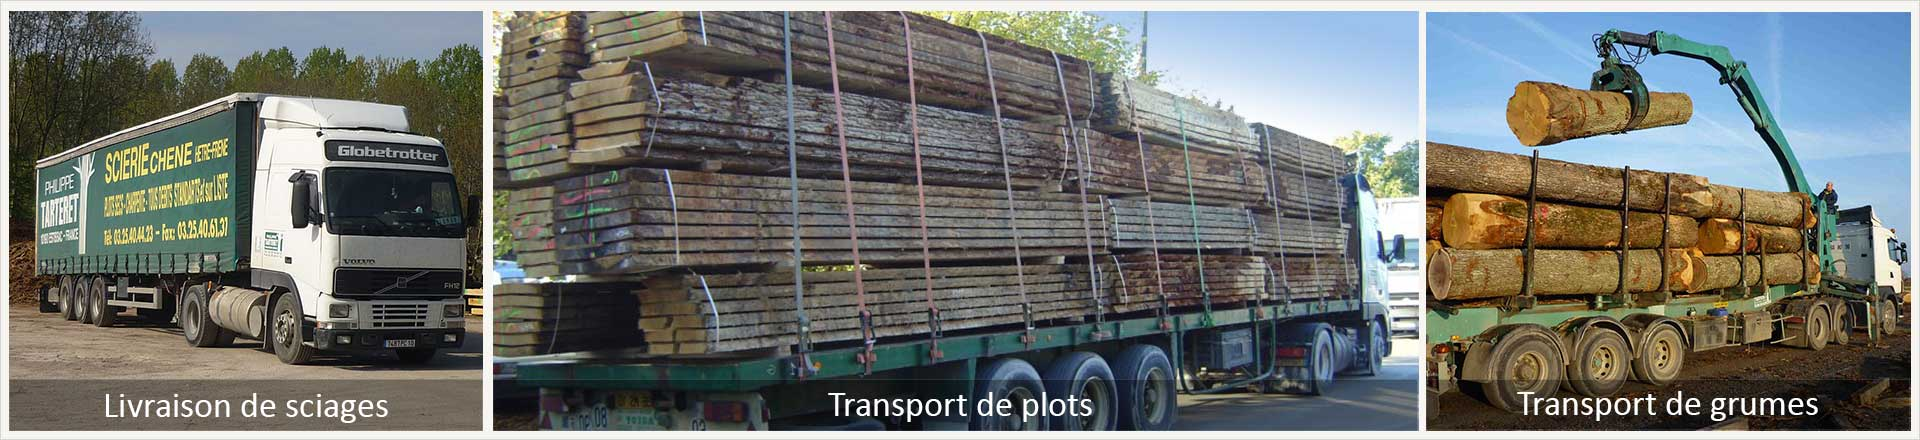 transport de plots